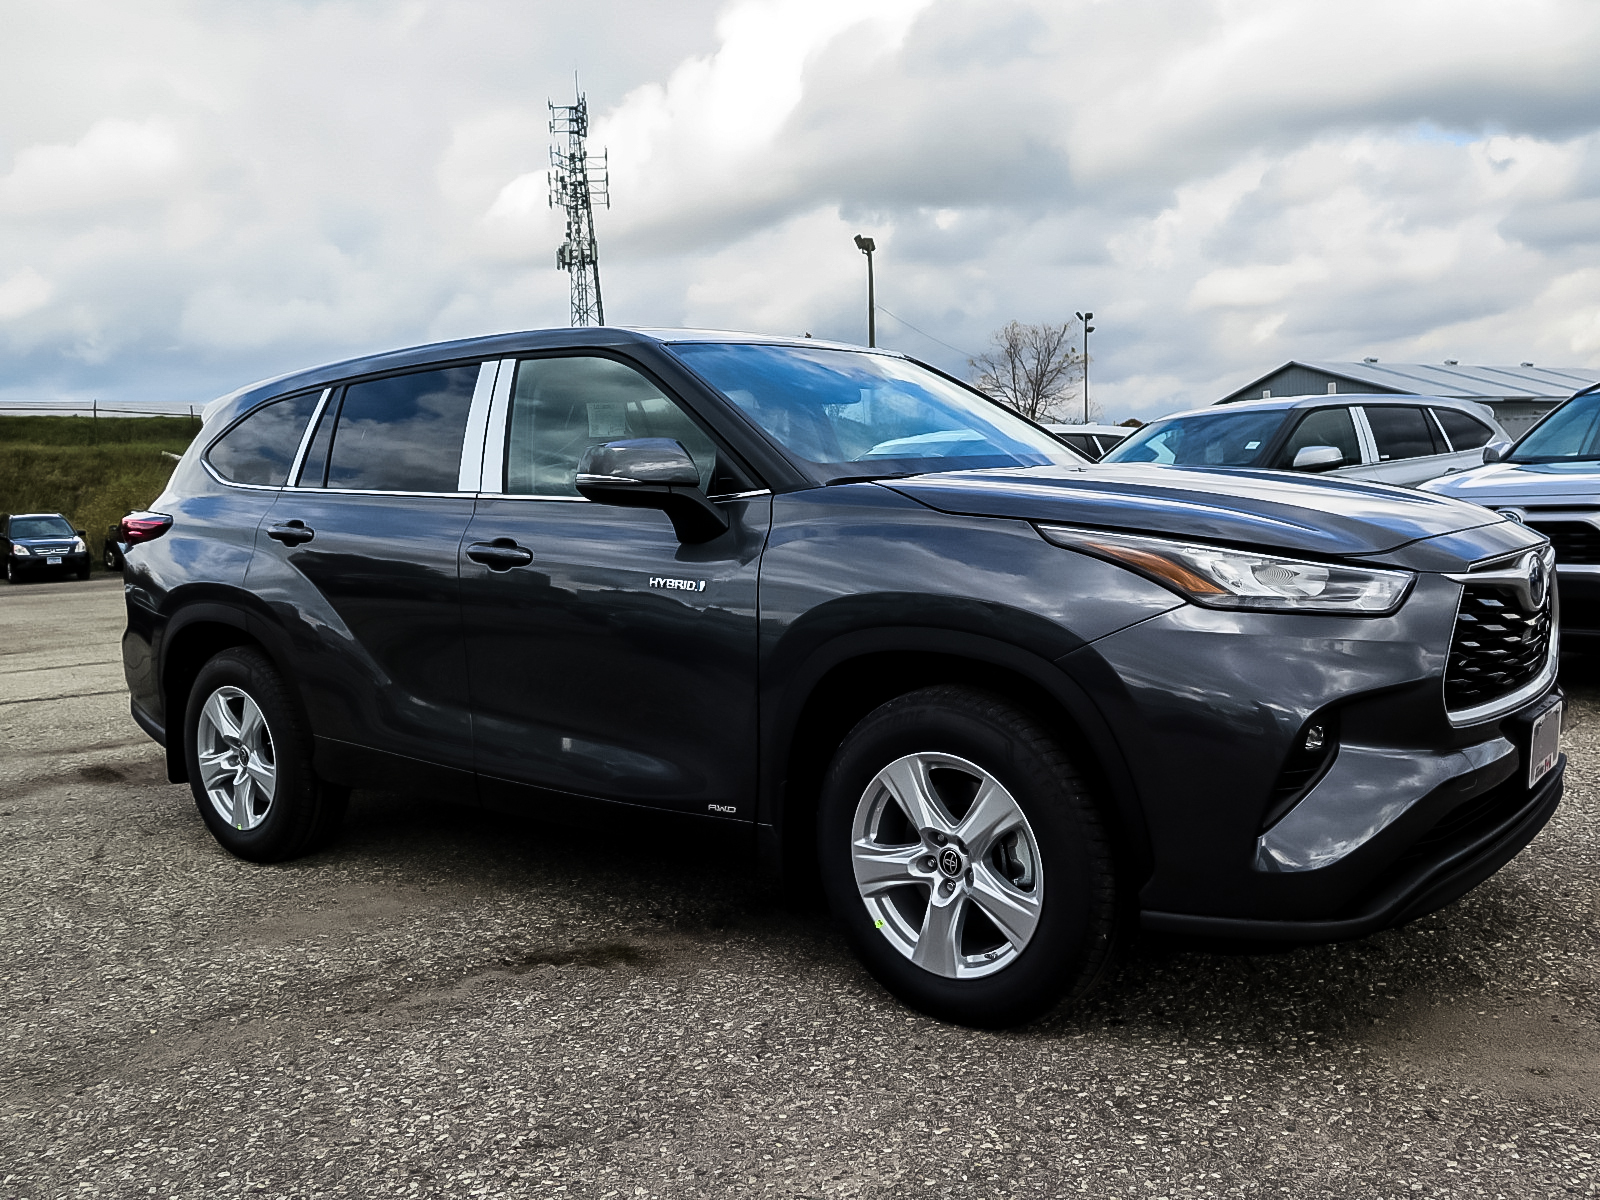 2021 toyota highlander for sale in waterloo, on